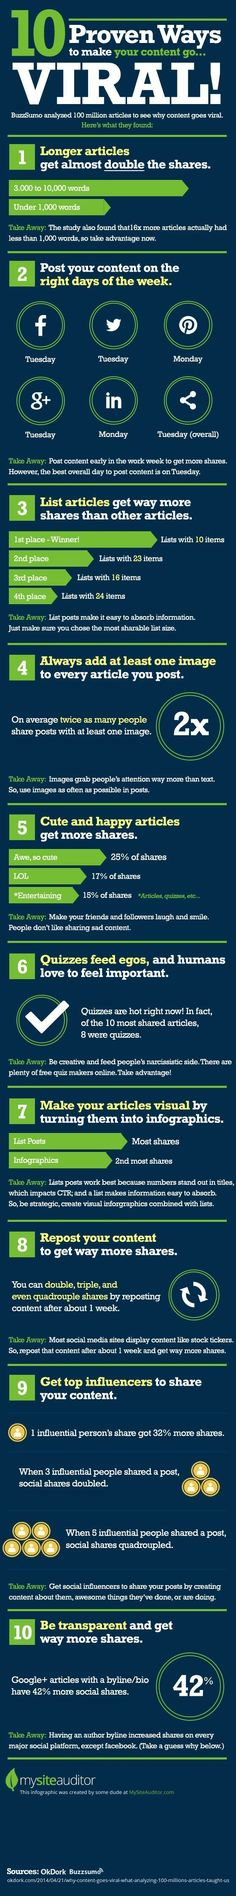 10 Proven Ways to Make Your Content Go Viral